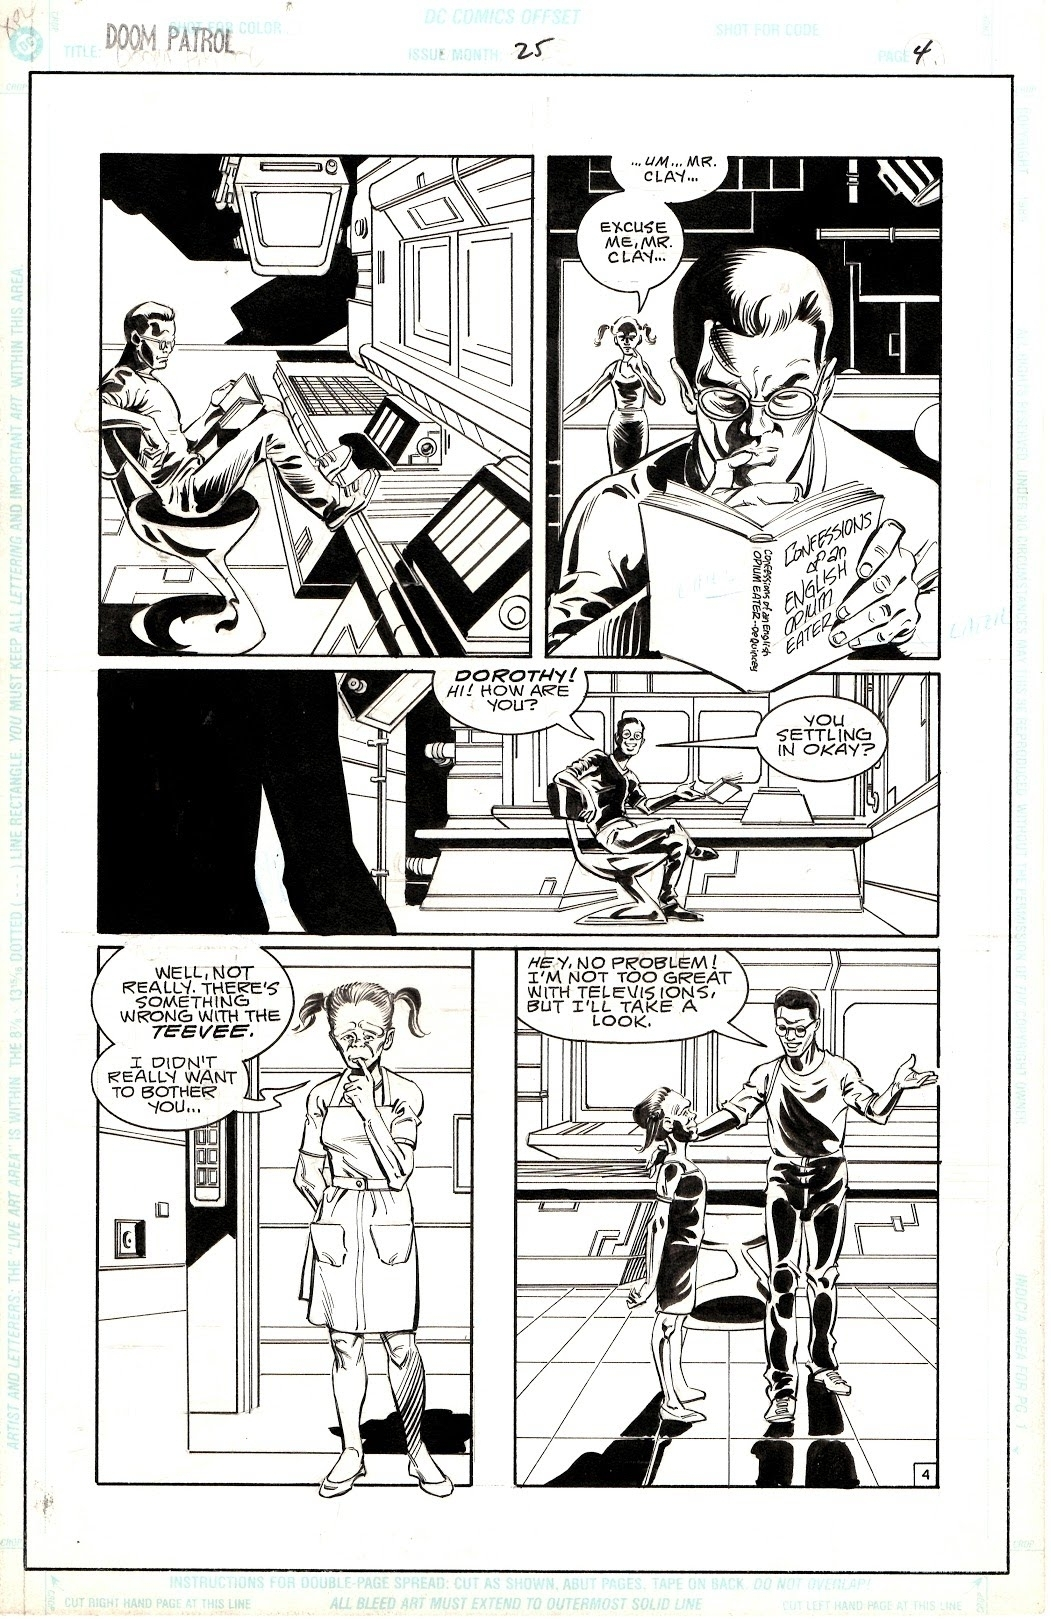 Doom Patrol Vol 2 Issue 25 Page 4 From Grant Morrison S Run